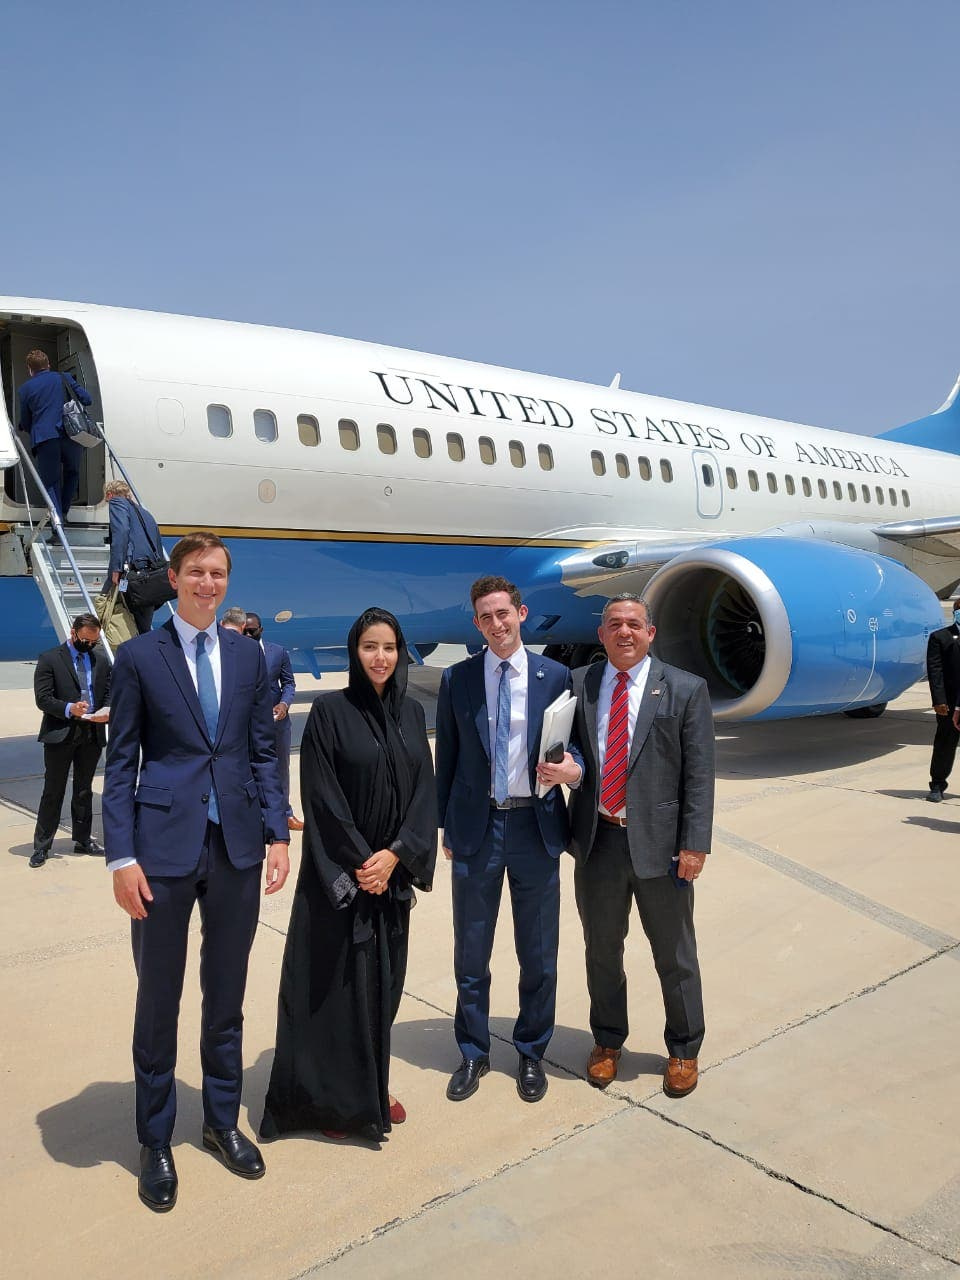 UAE Minister of Foreign Affairs' Hend Al Otaiba with the Israeli and US delegation to the UAE. (Twitter, Hend Al Otaiba)